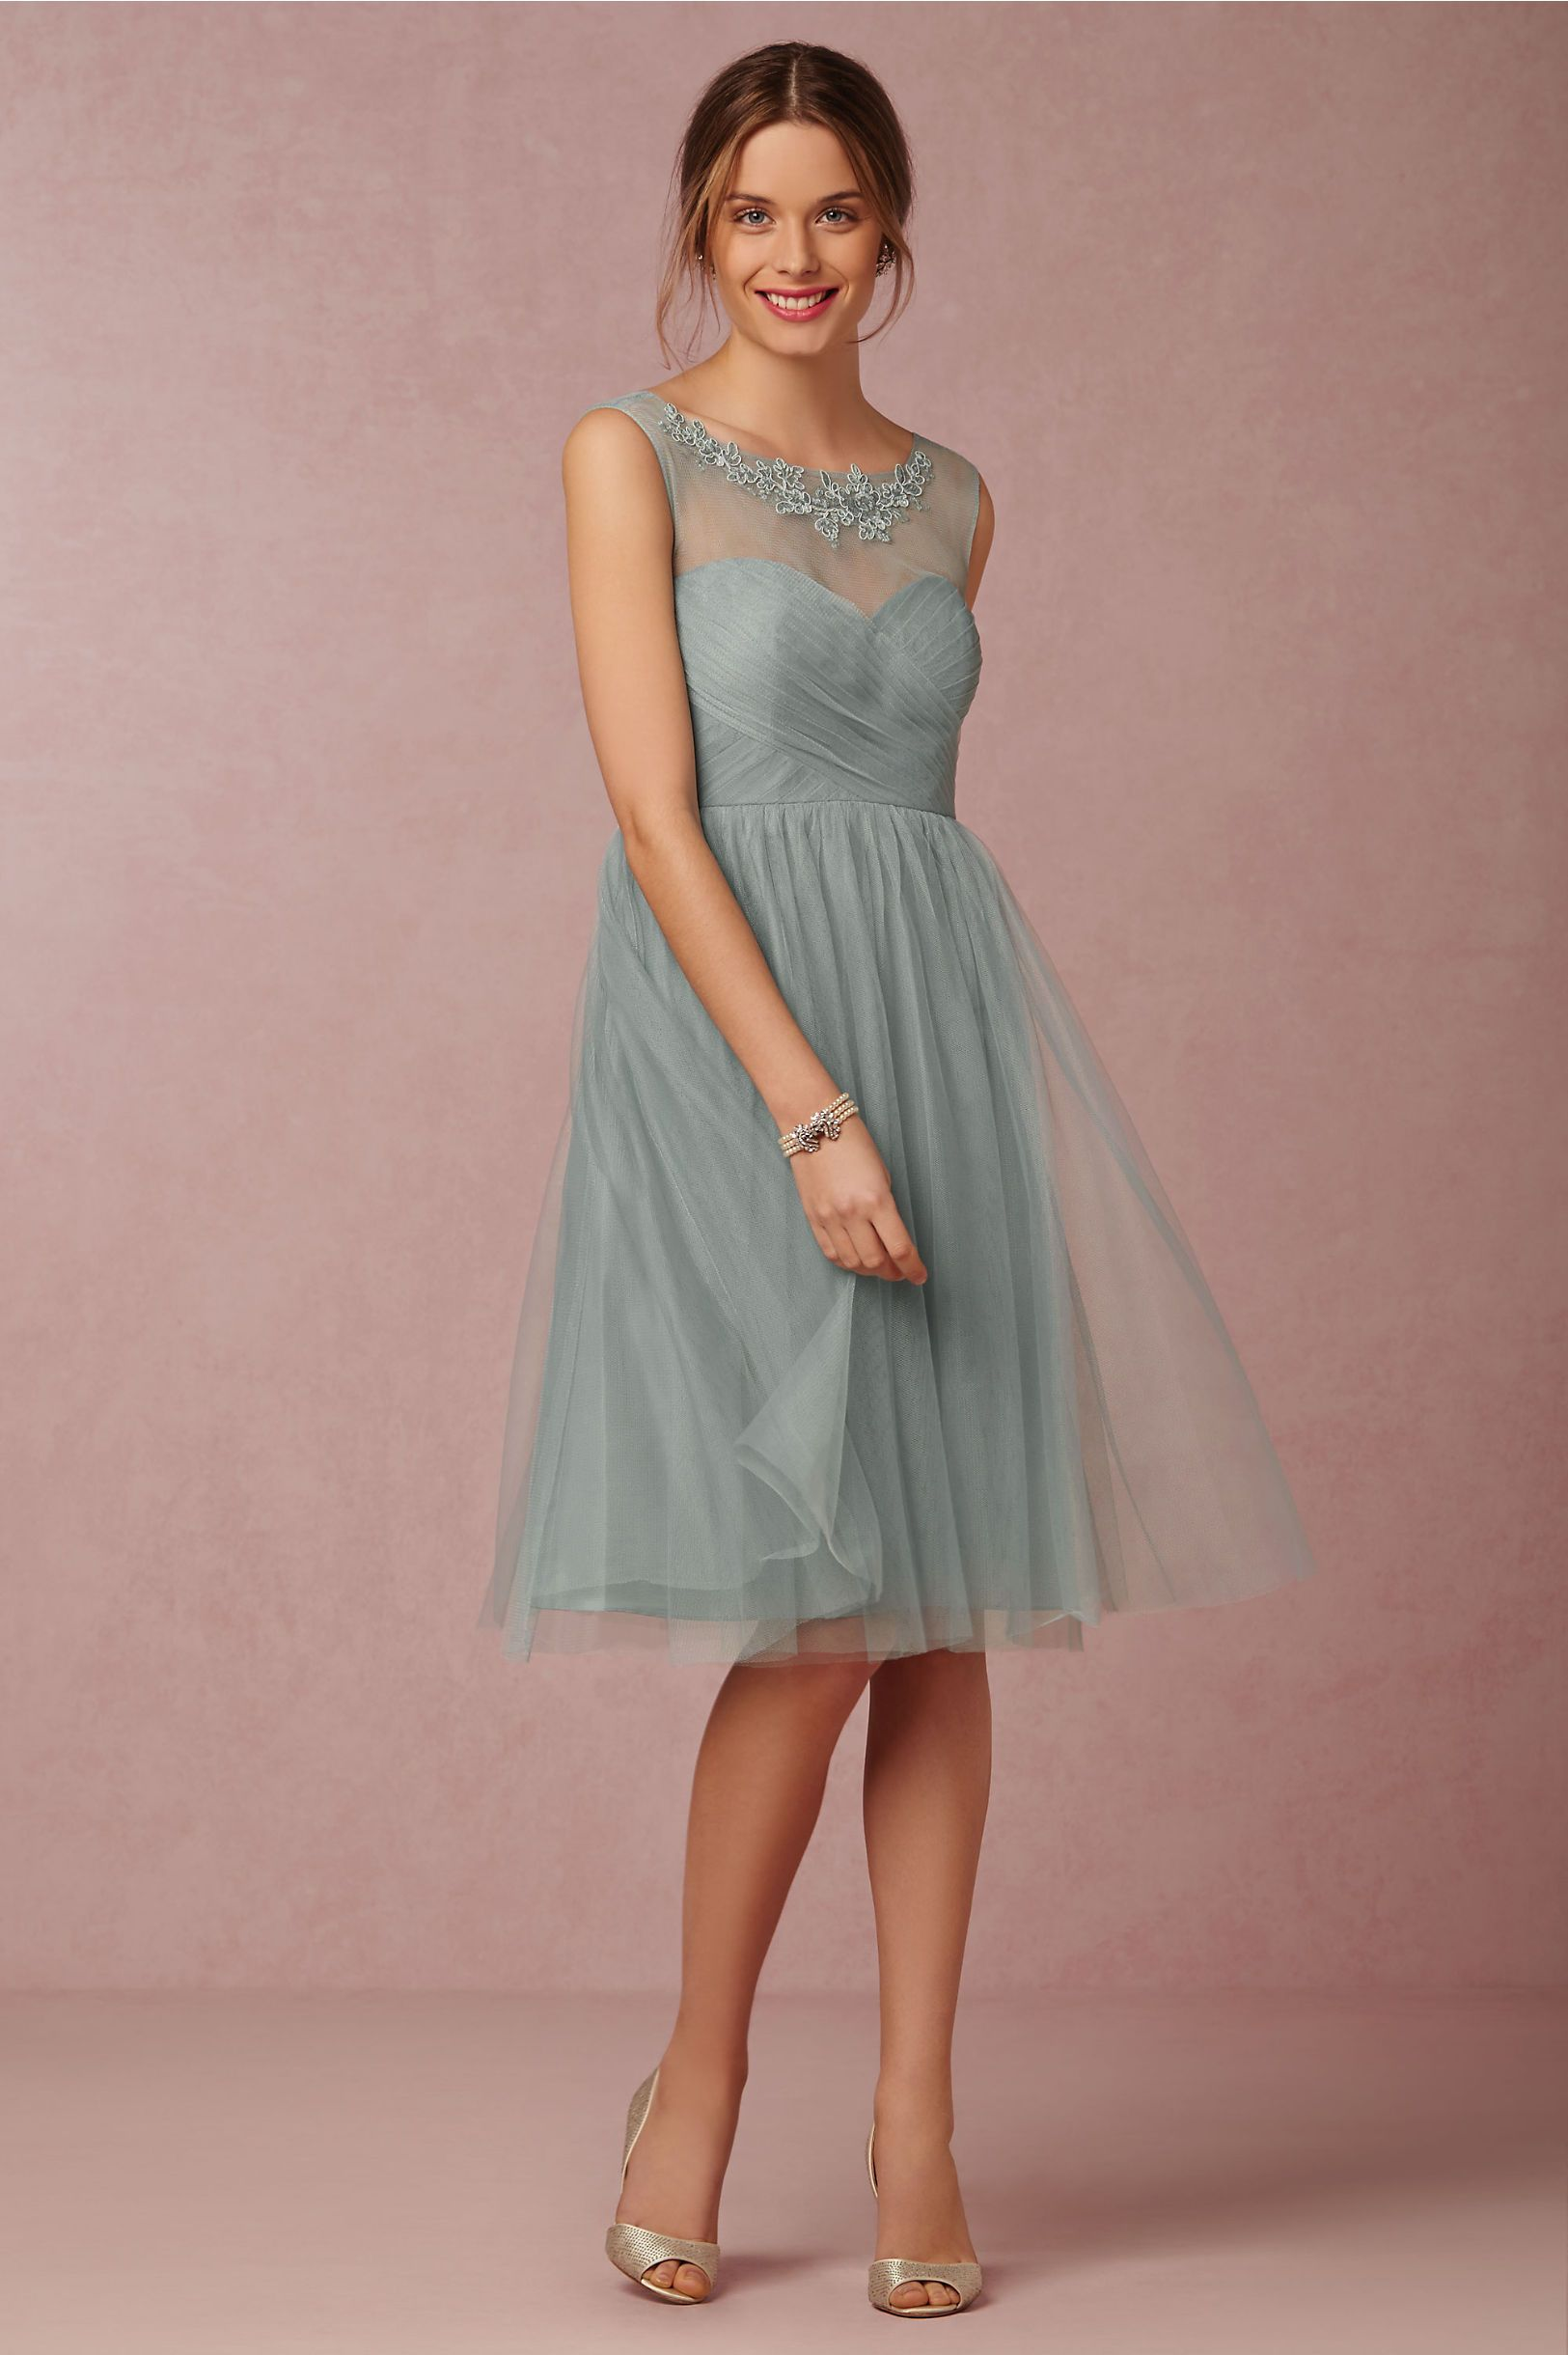 Chloe Dress Sage Green Bridesmaid Dress Short Bridesmaid Dresses Bridesmaid Dresses